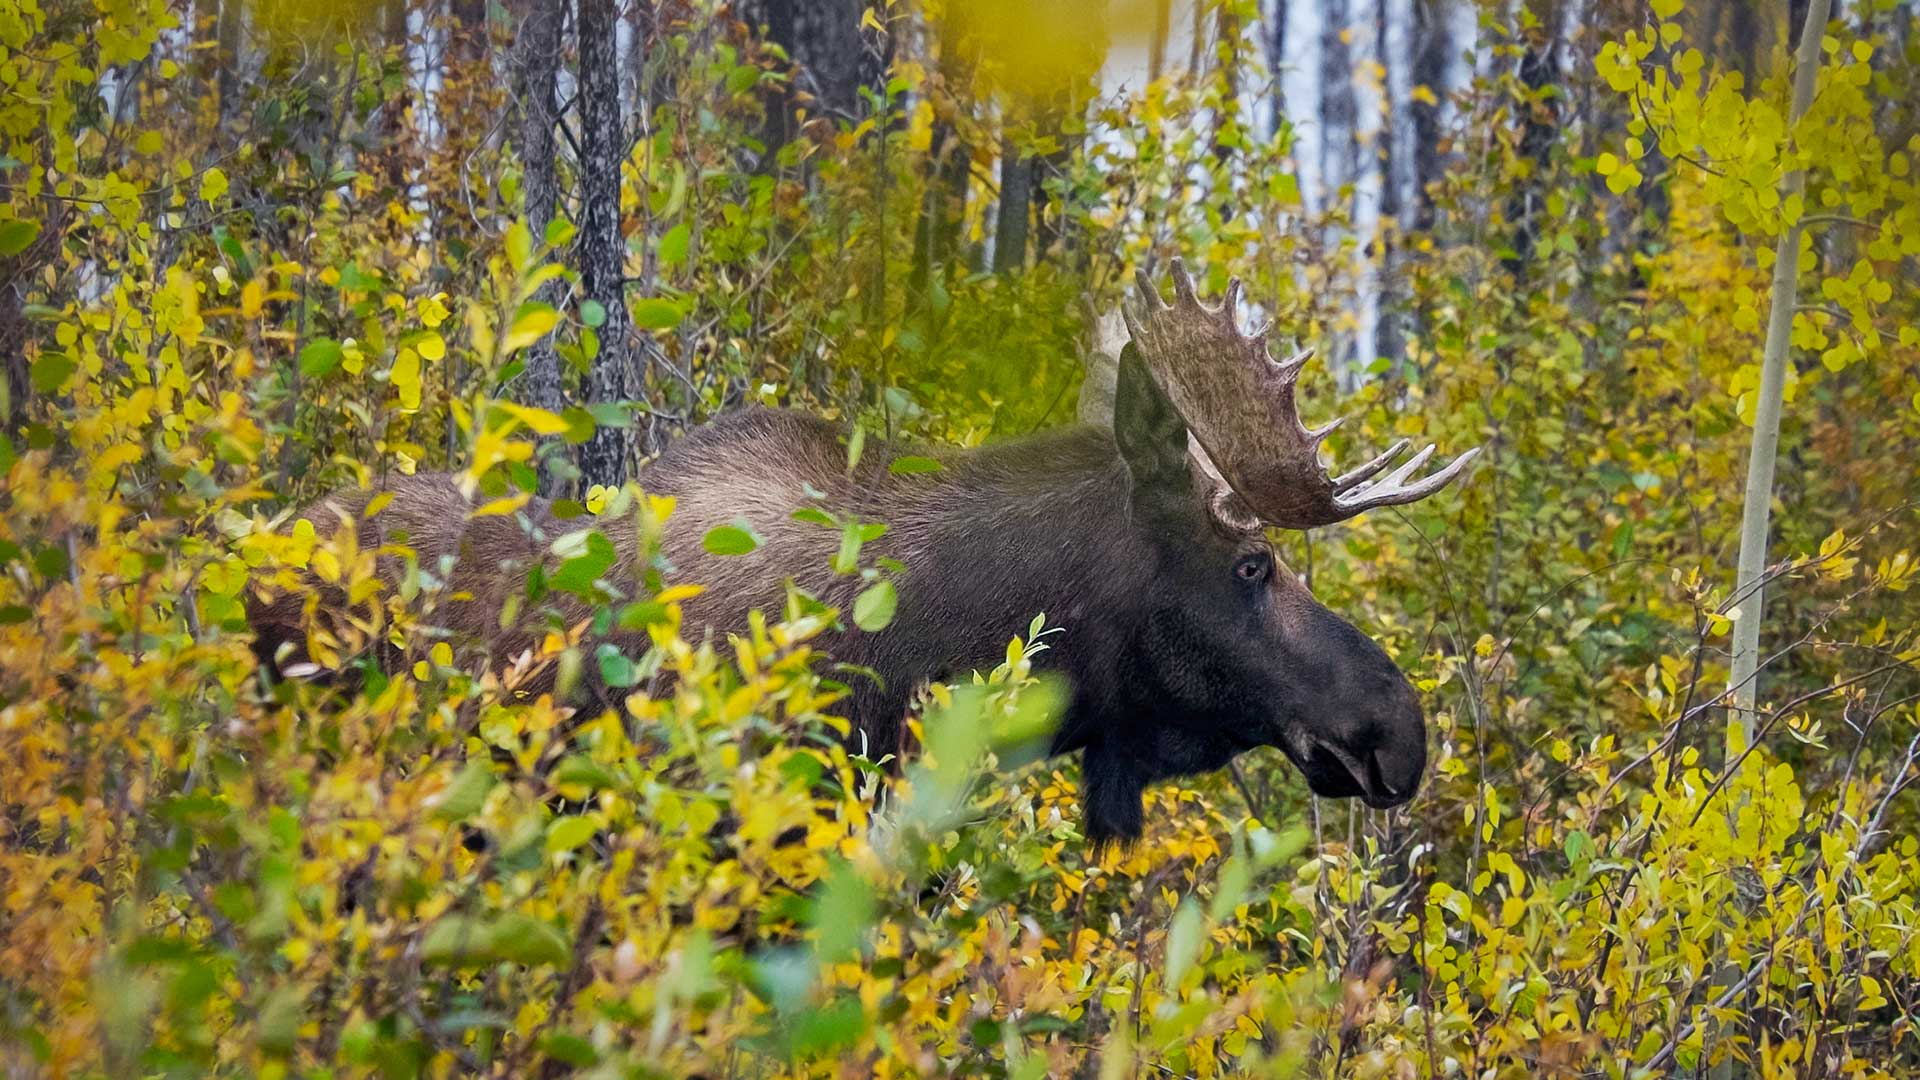 A wild Moose in the bush near the highway, Canada